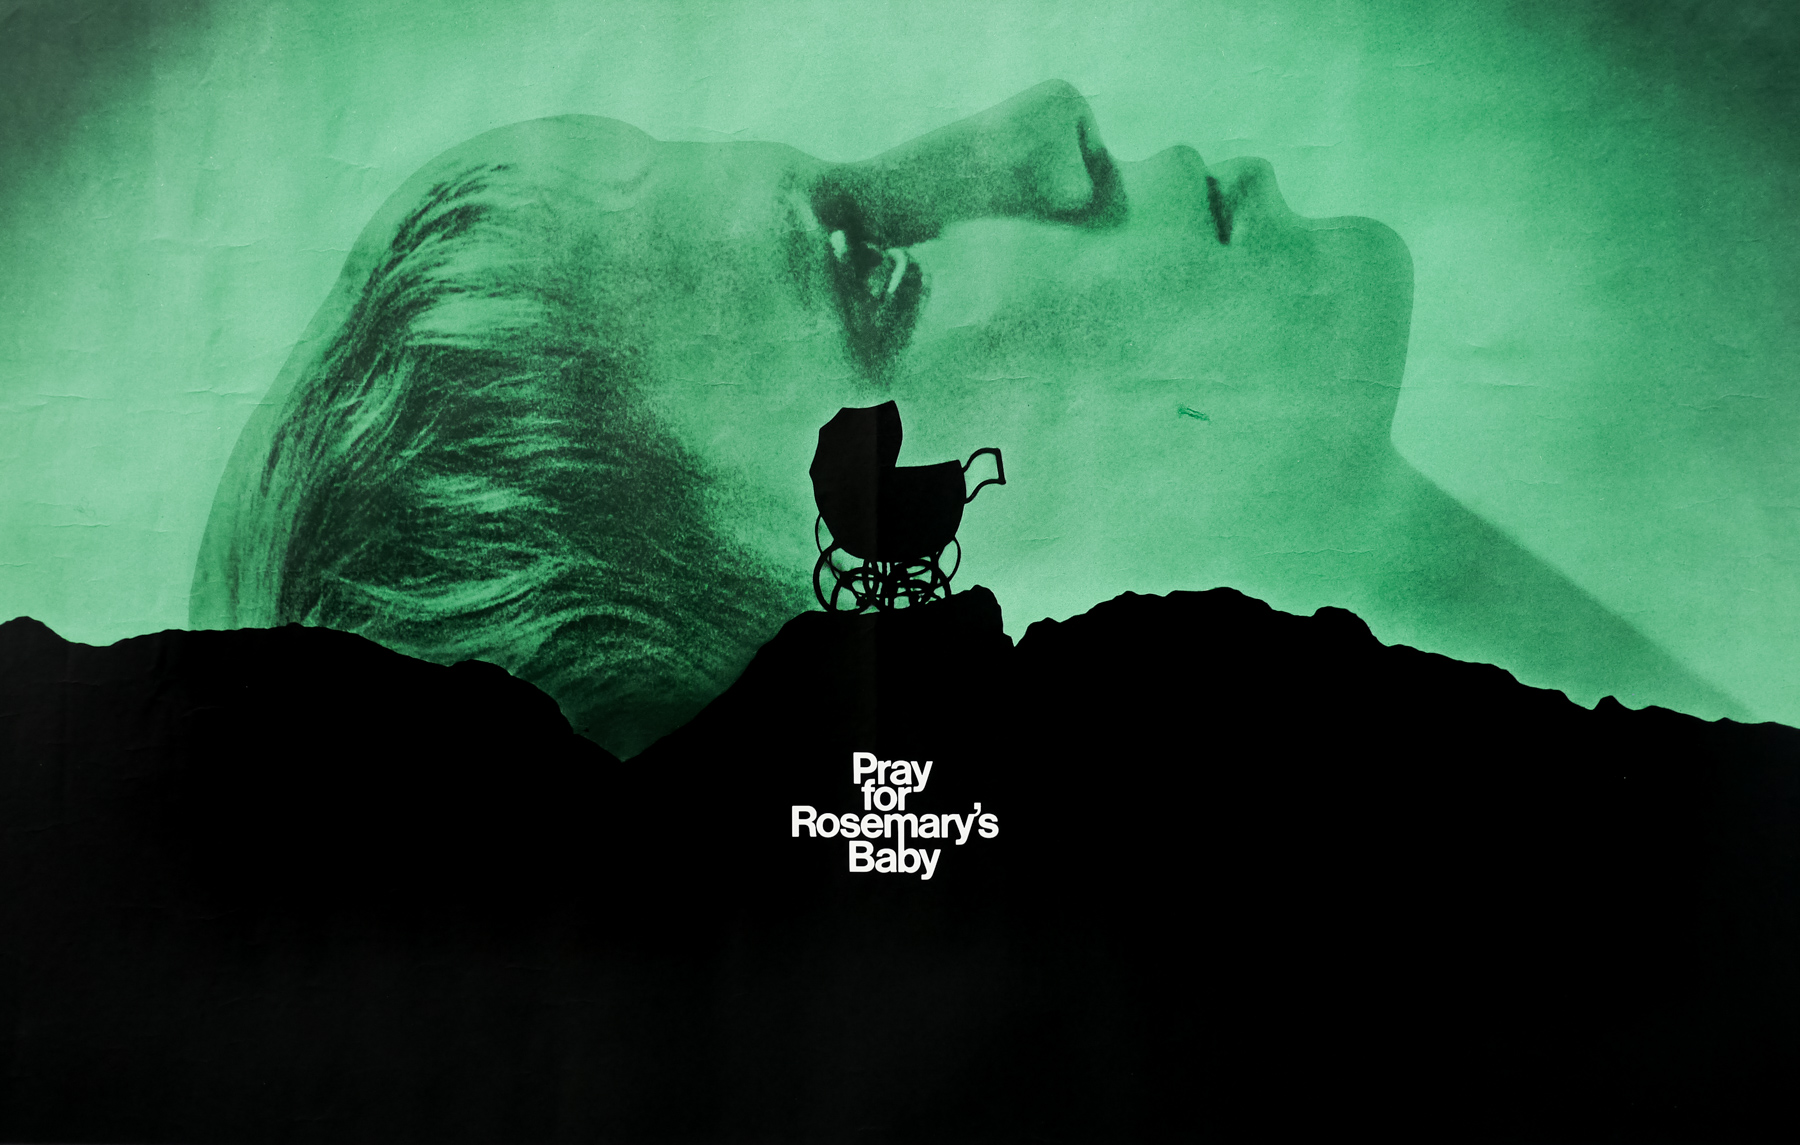 Promotional poster for  Rosemary's Baby  (1968), which draws connections to  Eyes Wide Shut  (1999)